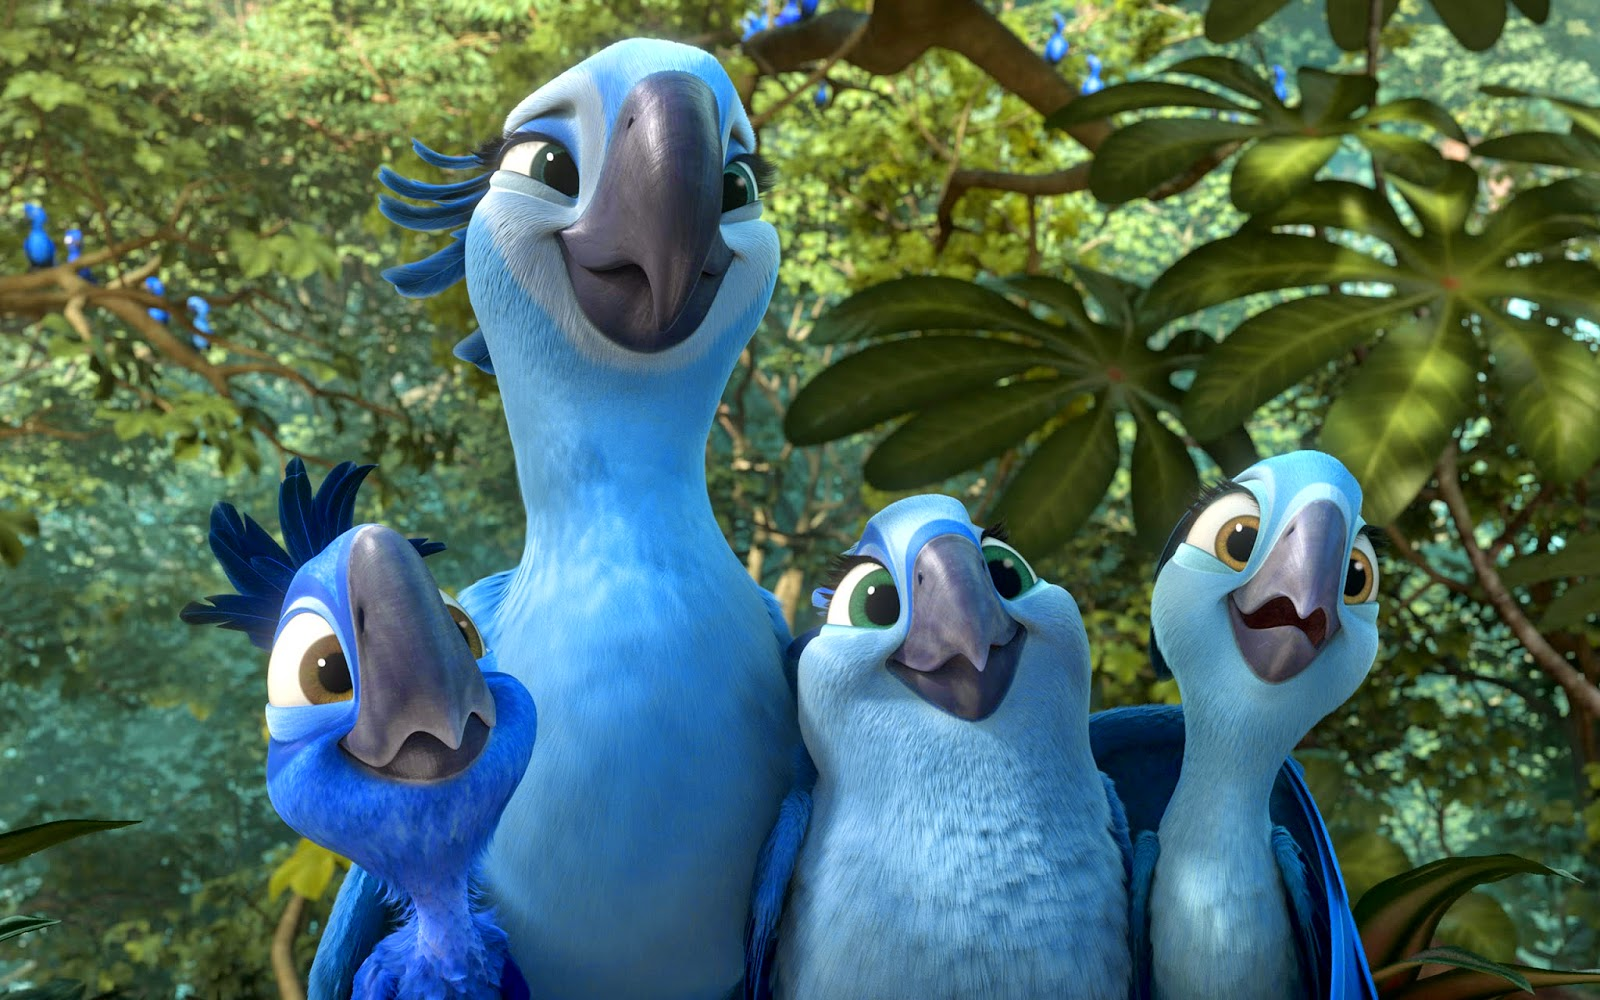 2 2014 movie hd wallpapers rio 2 2014 movie hd wallpapers voltagebd Choice Image